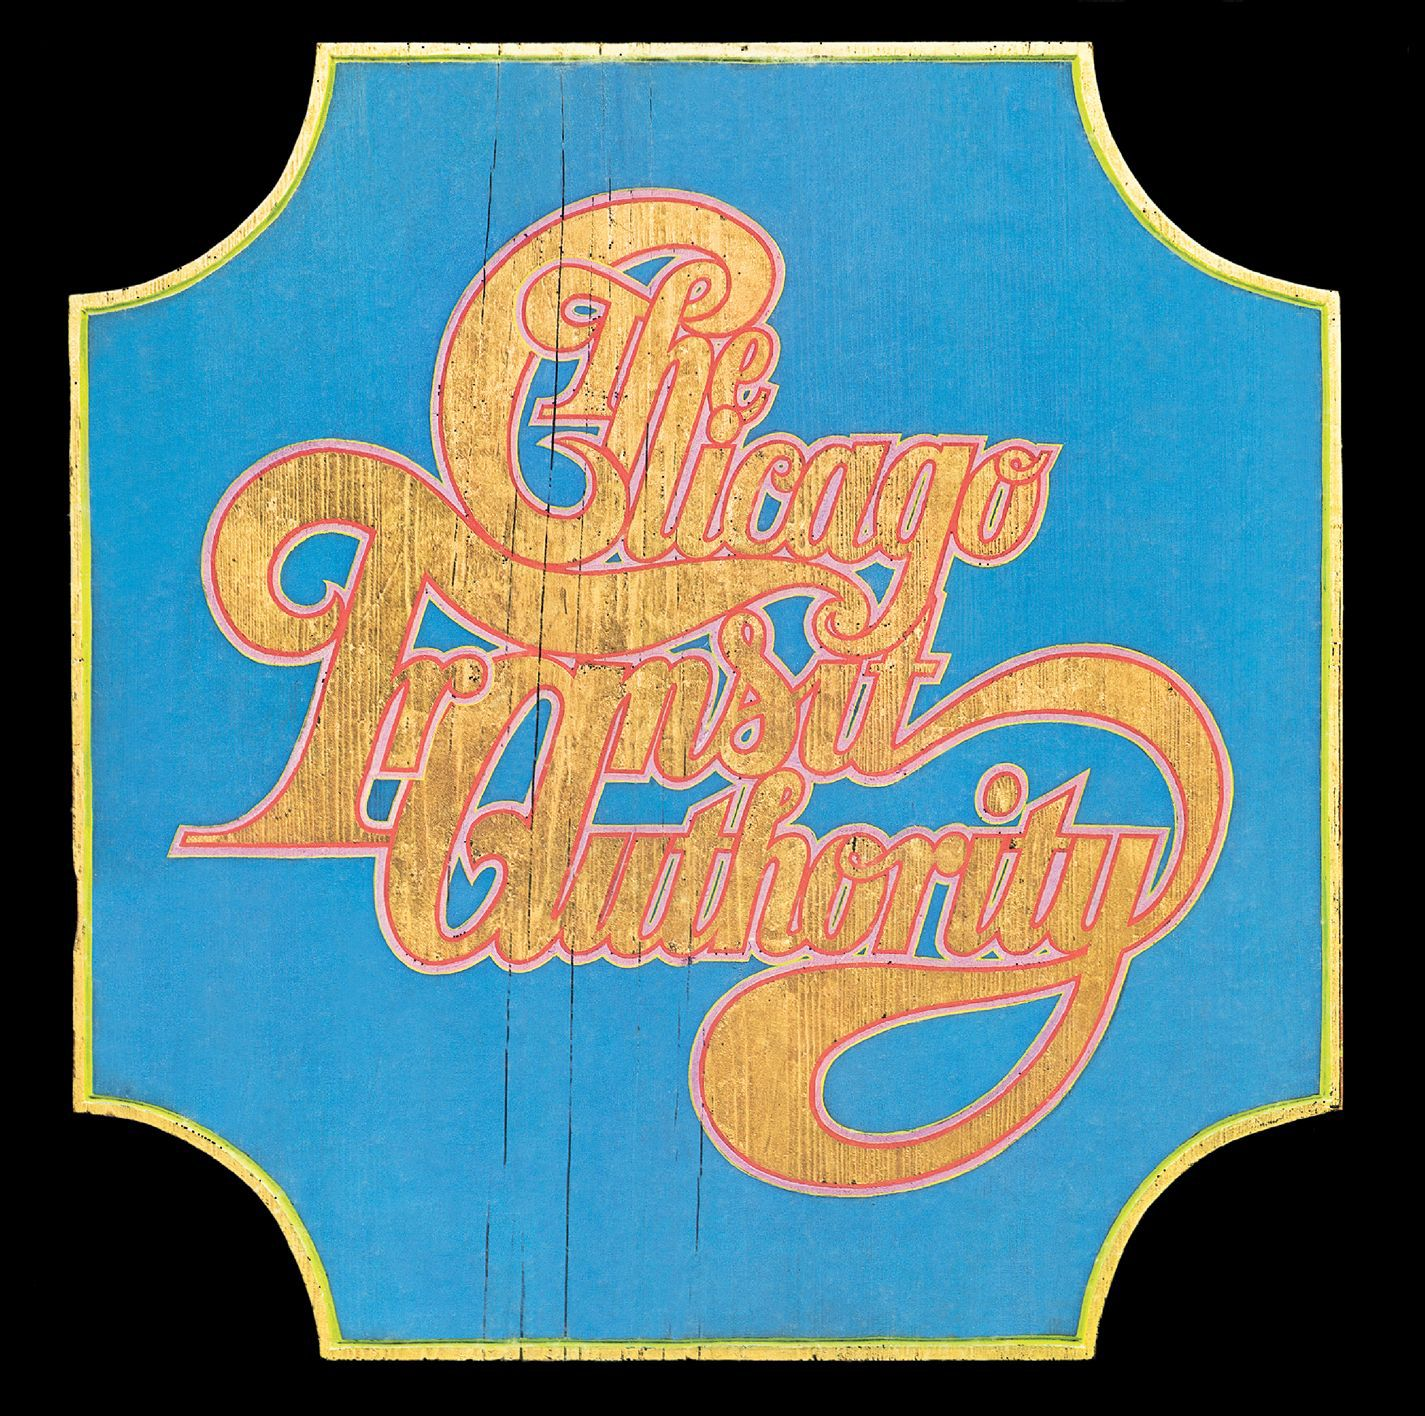 Chicago / Chicago Transit Authority CD-Cover